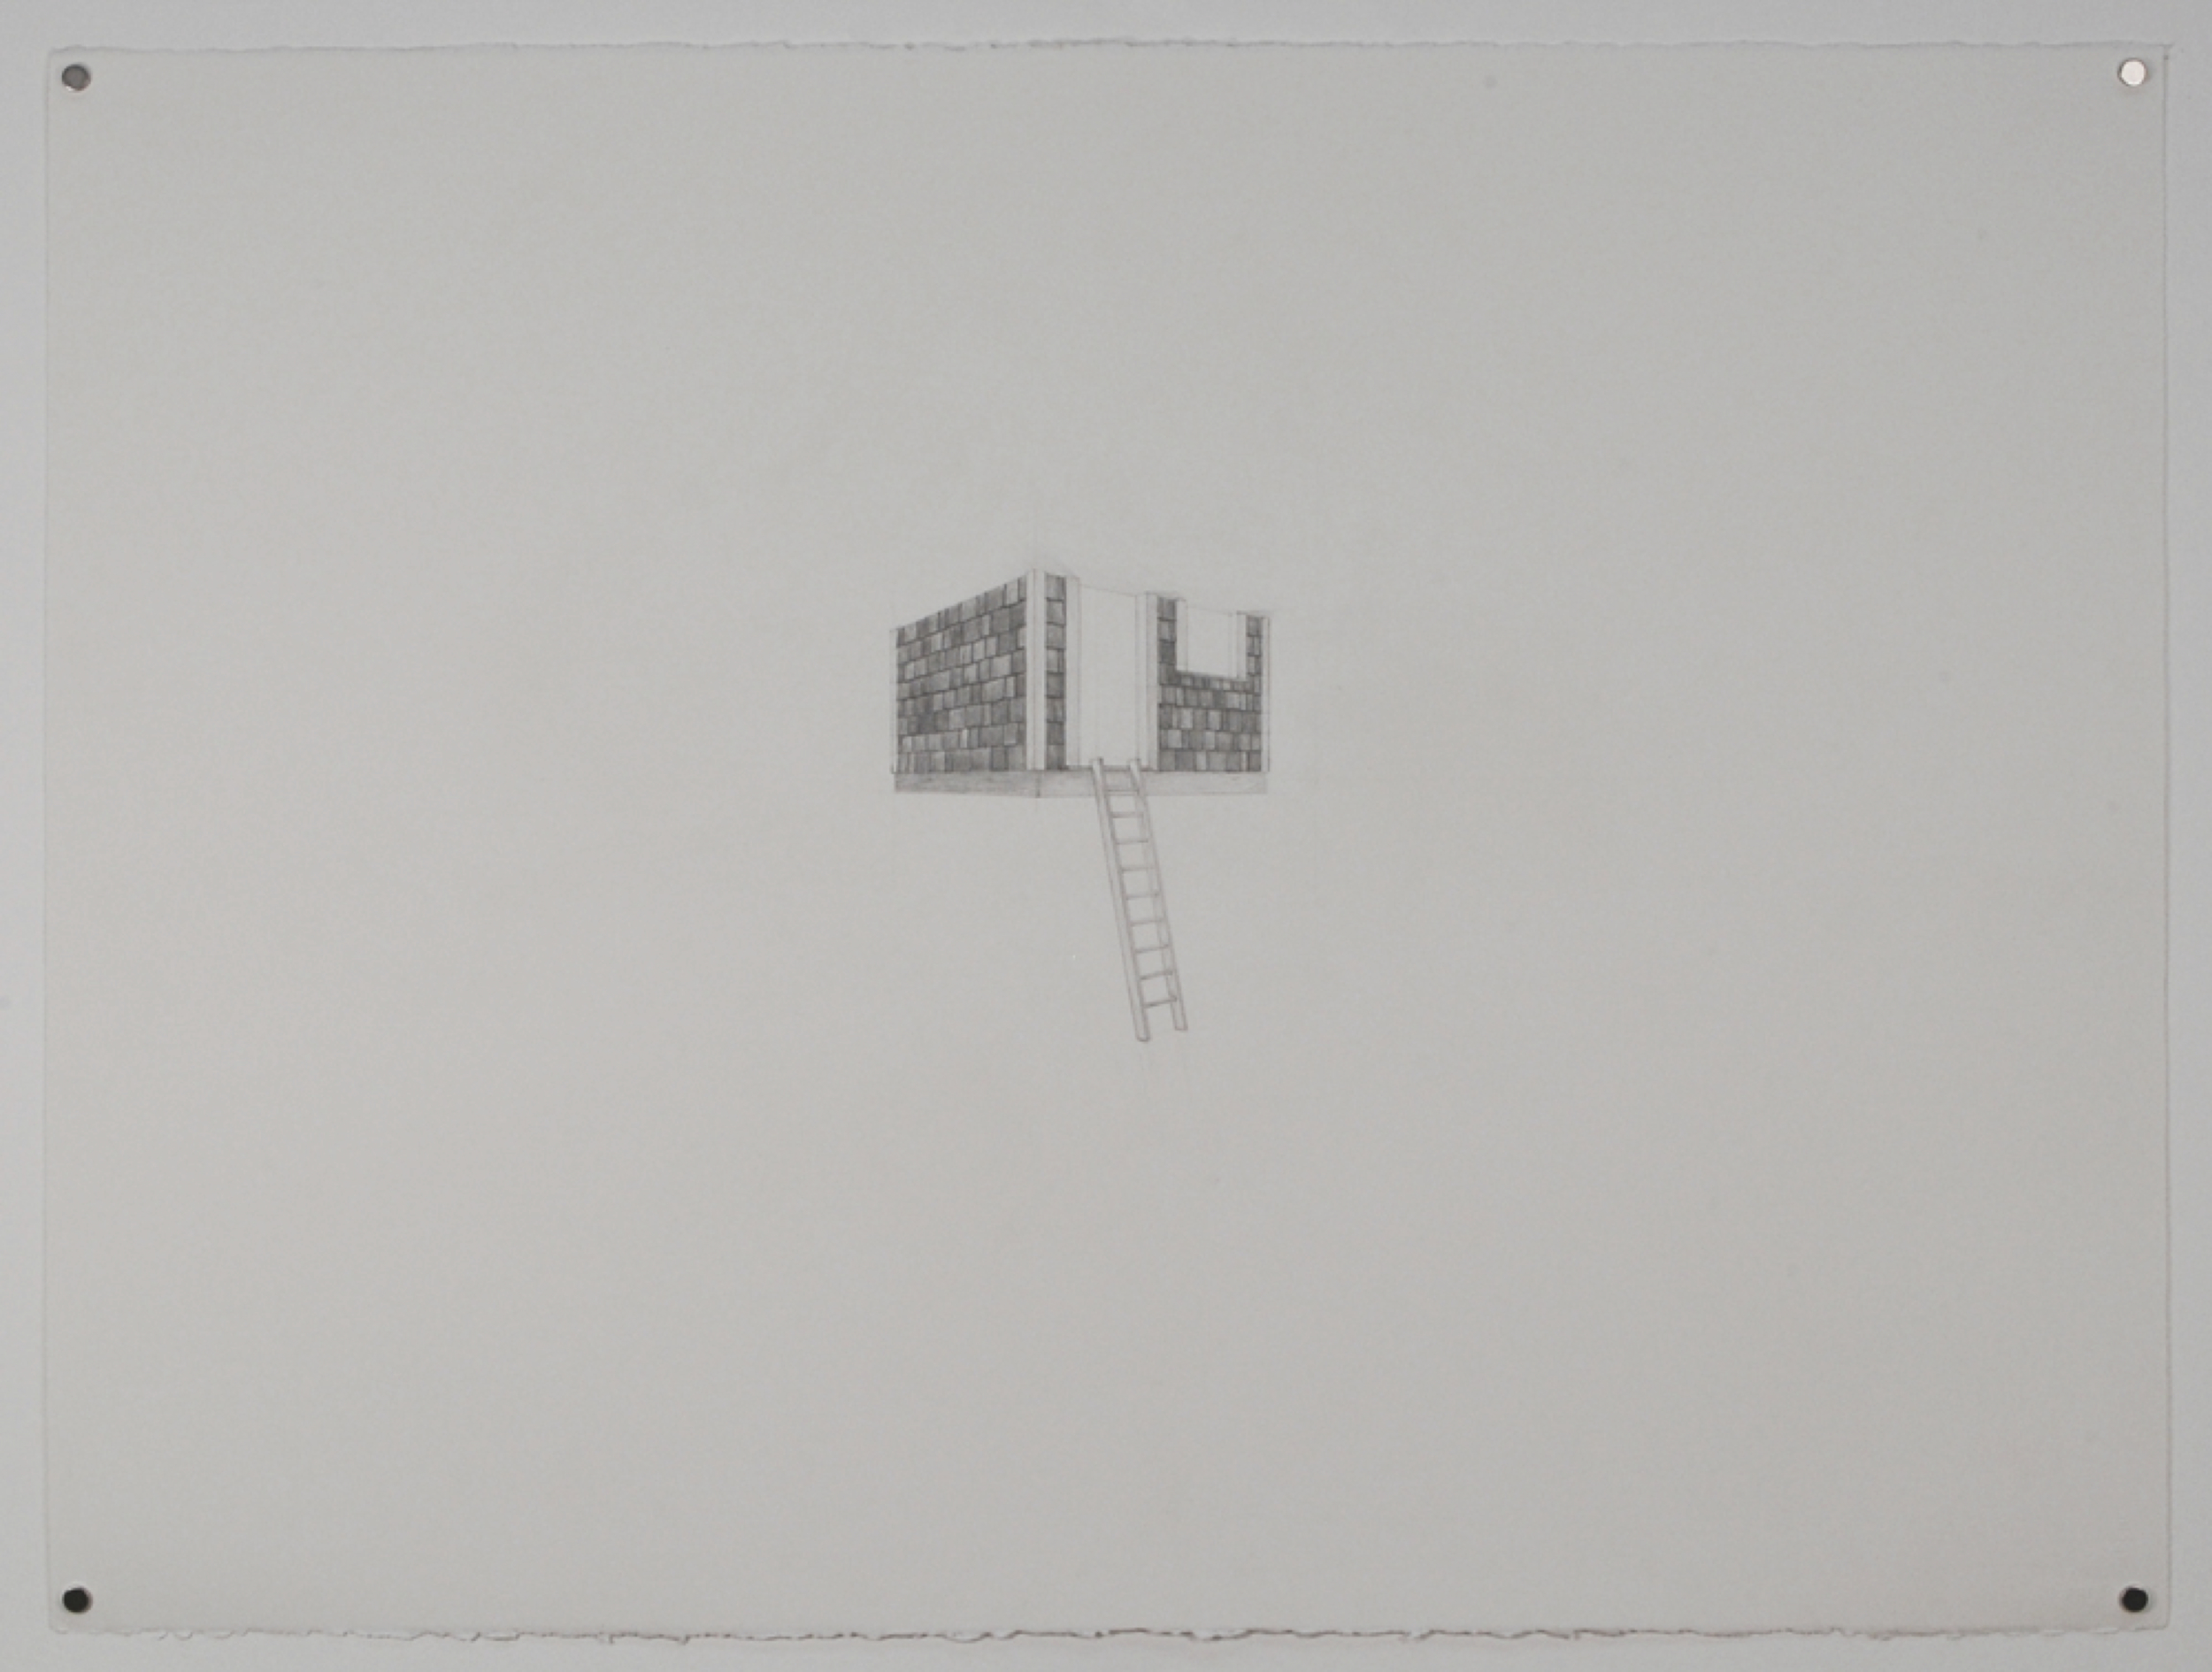 "Tree House 1 / graphite on paper / 22 x 30"" / SOLD"